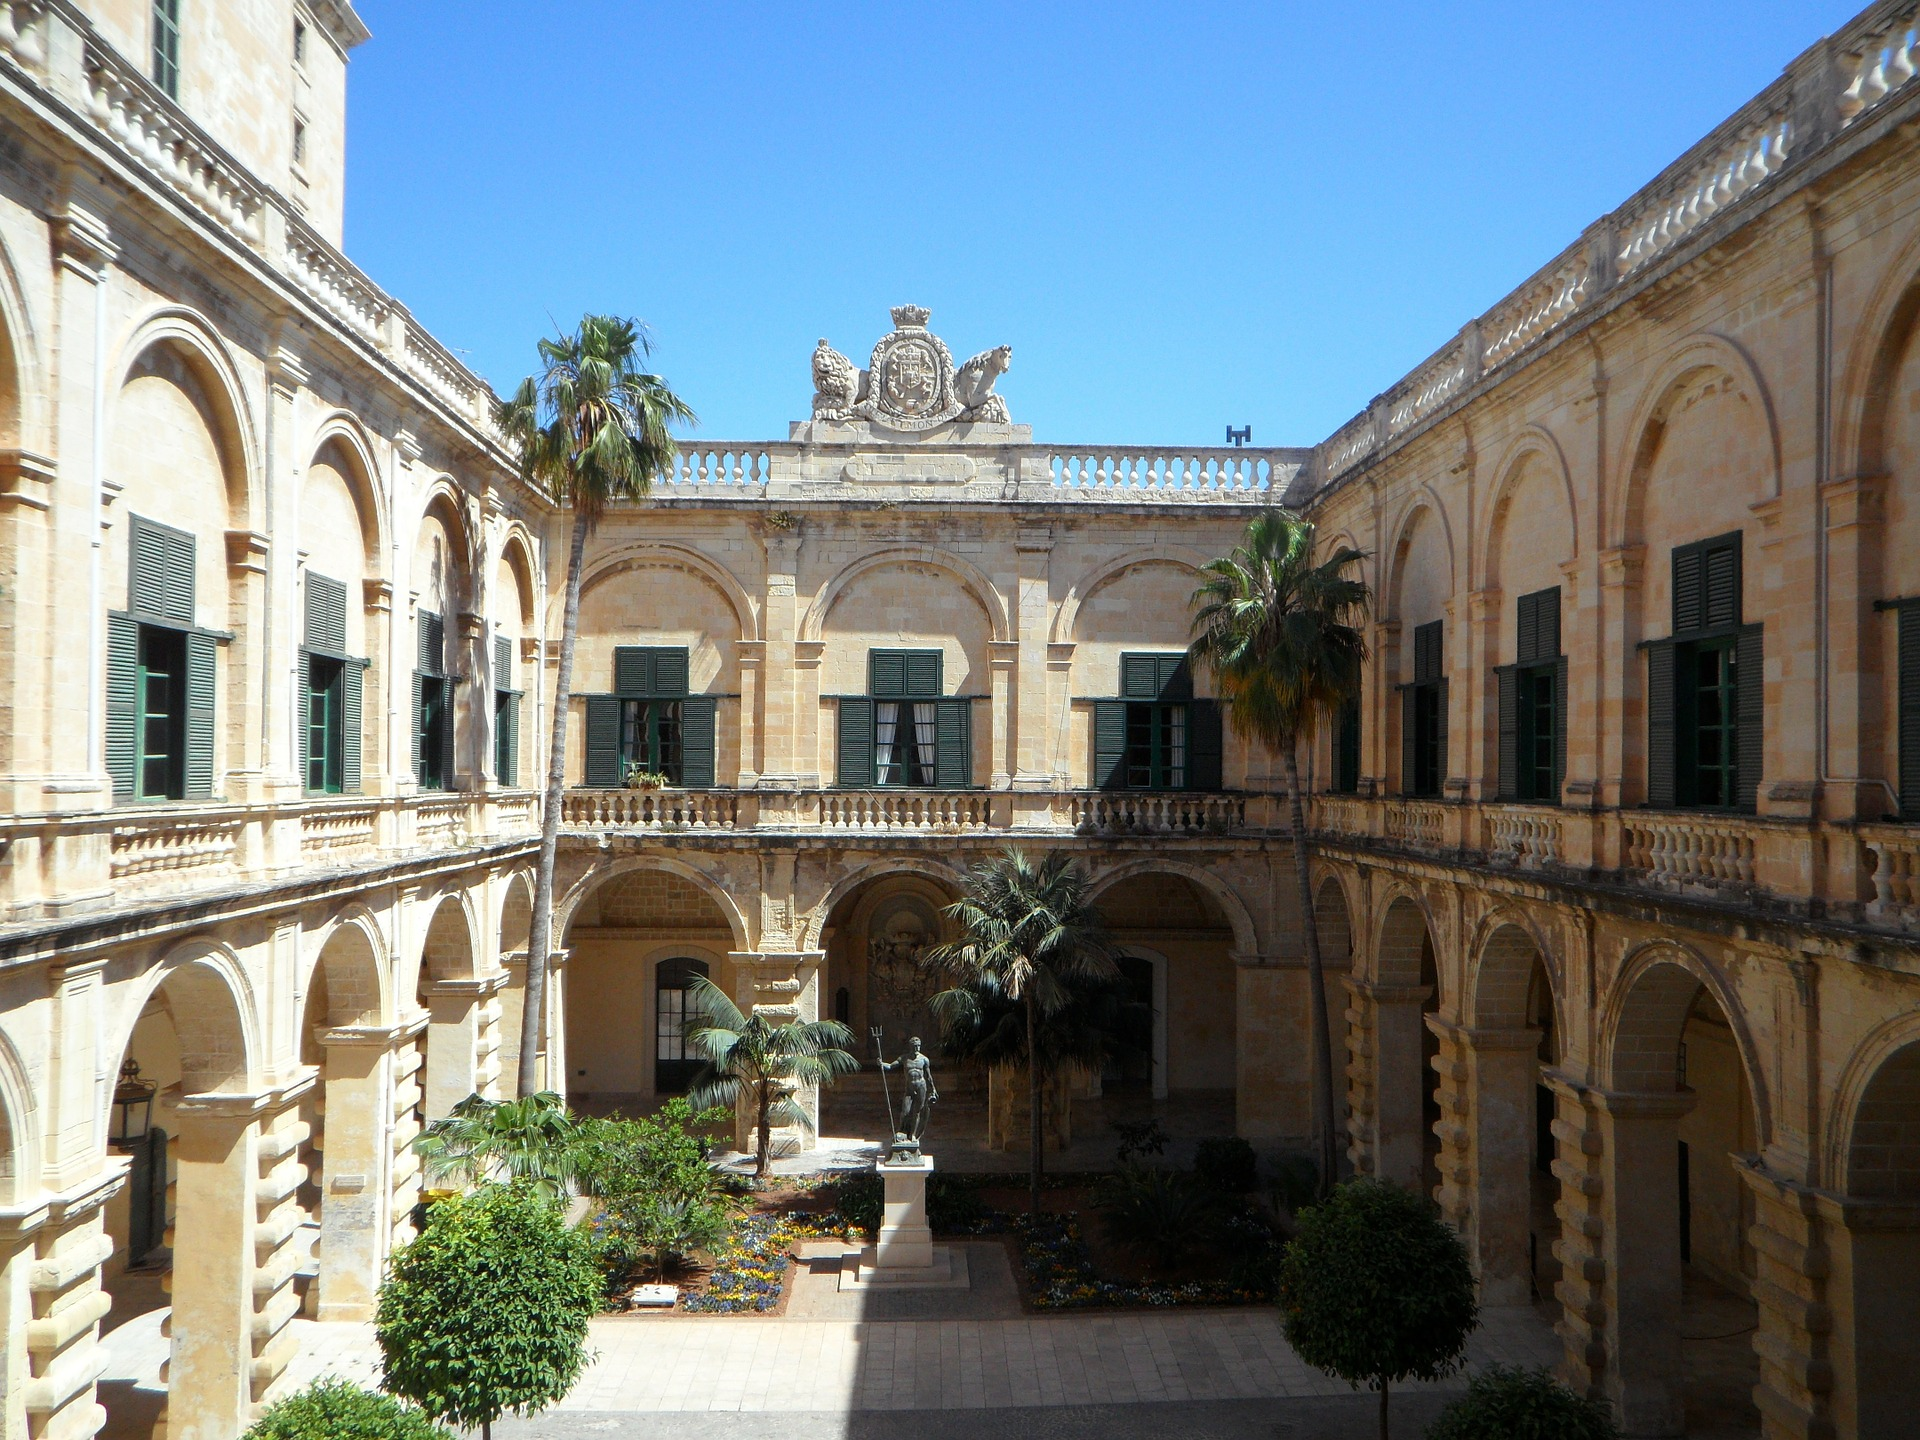 The Palace of the Grand Masters, Valletta